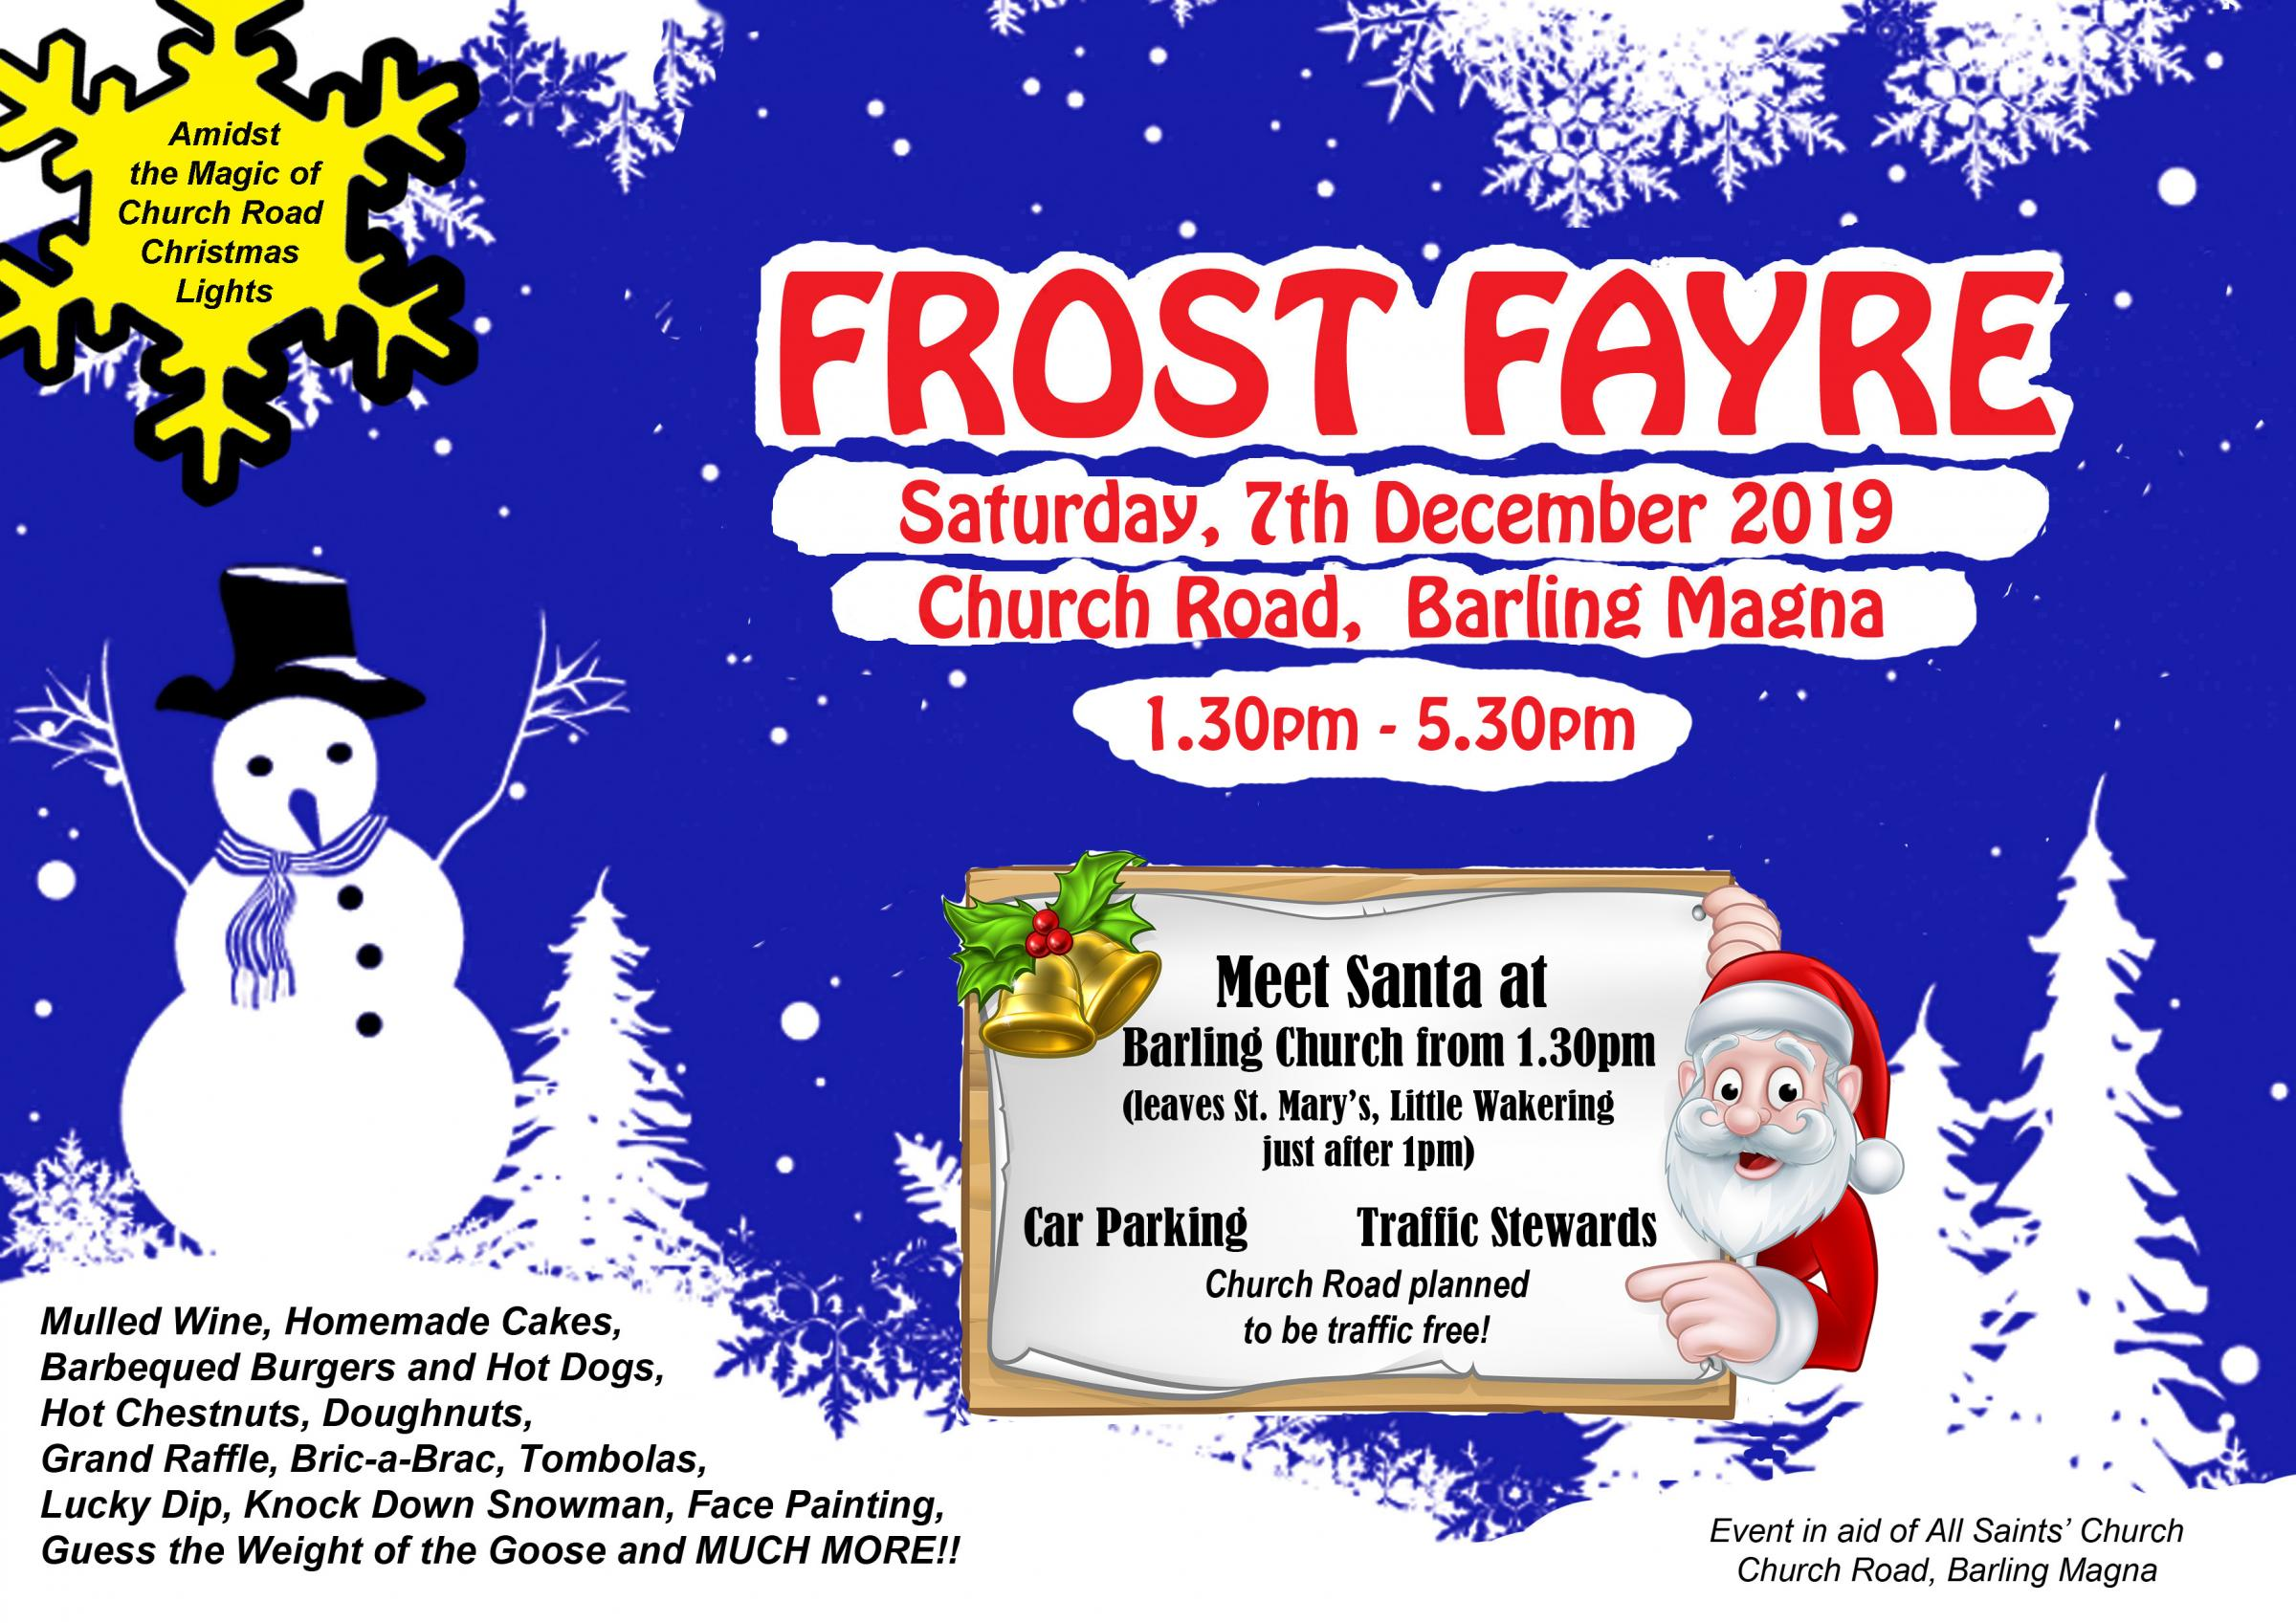 Frost Fayre in Barling Magna